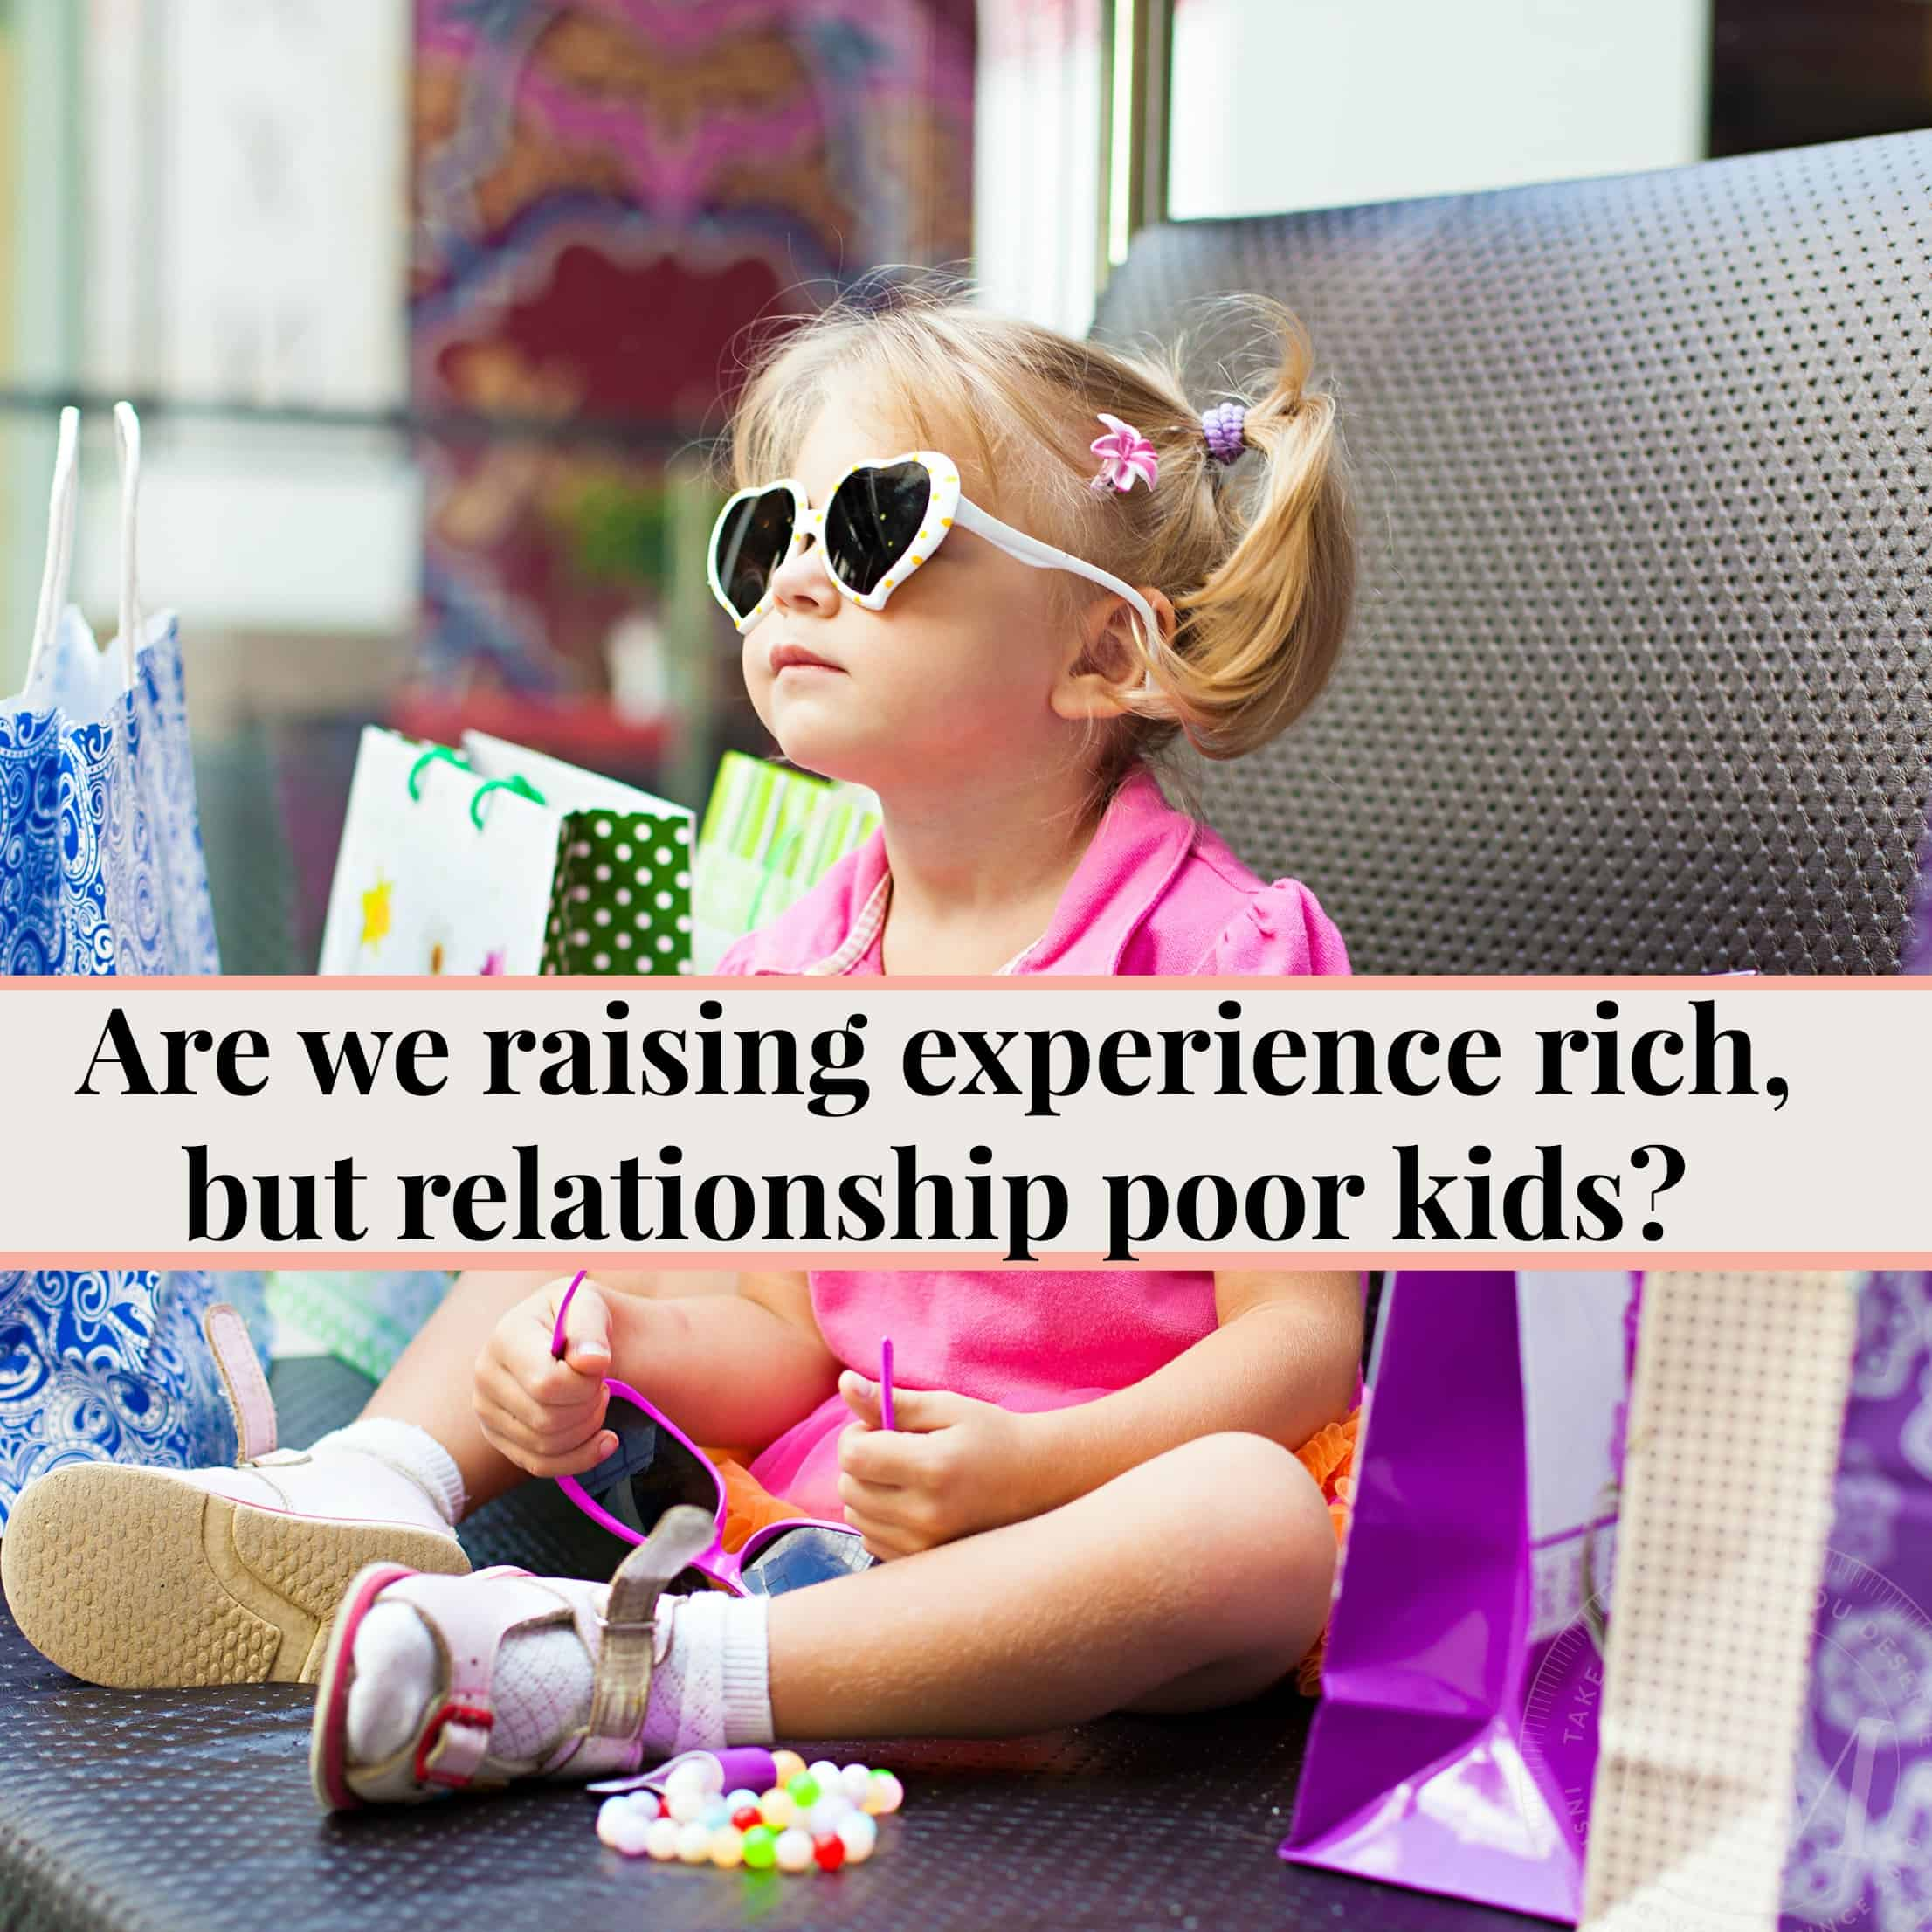 are we raising experience rich, but relationship poor kids?